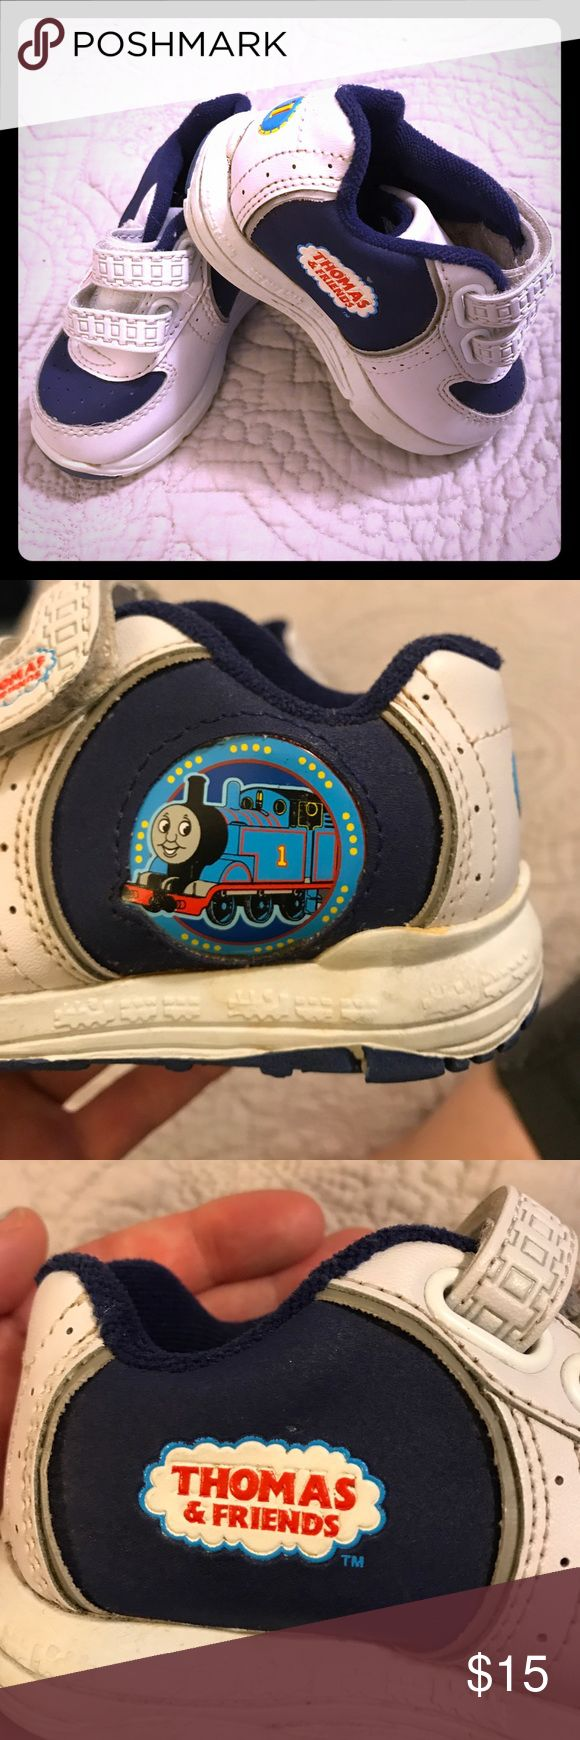 Thomas the Train Shoes Thomas the train shoes in excellent condition. Some discoloration from storage otherwise unworn. Like new! thomas the train Shoes Sneakers